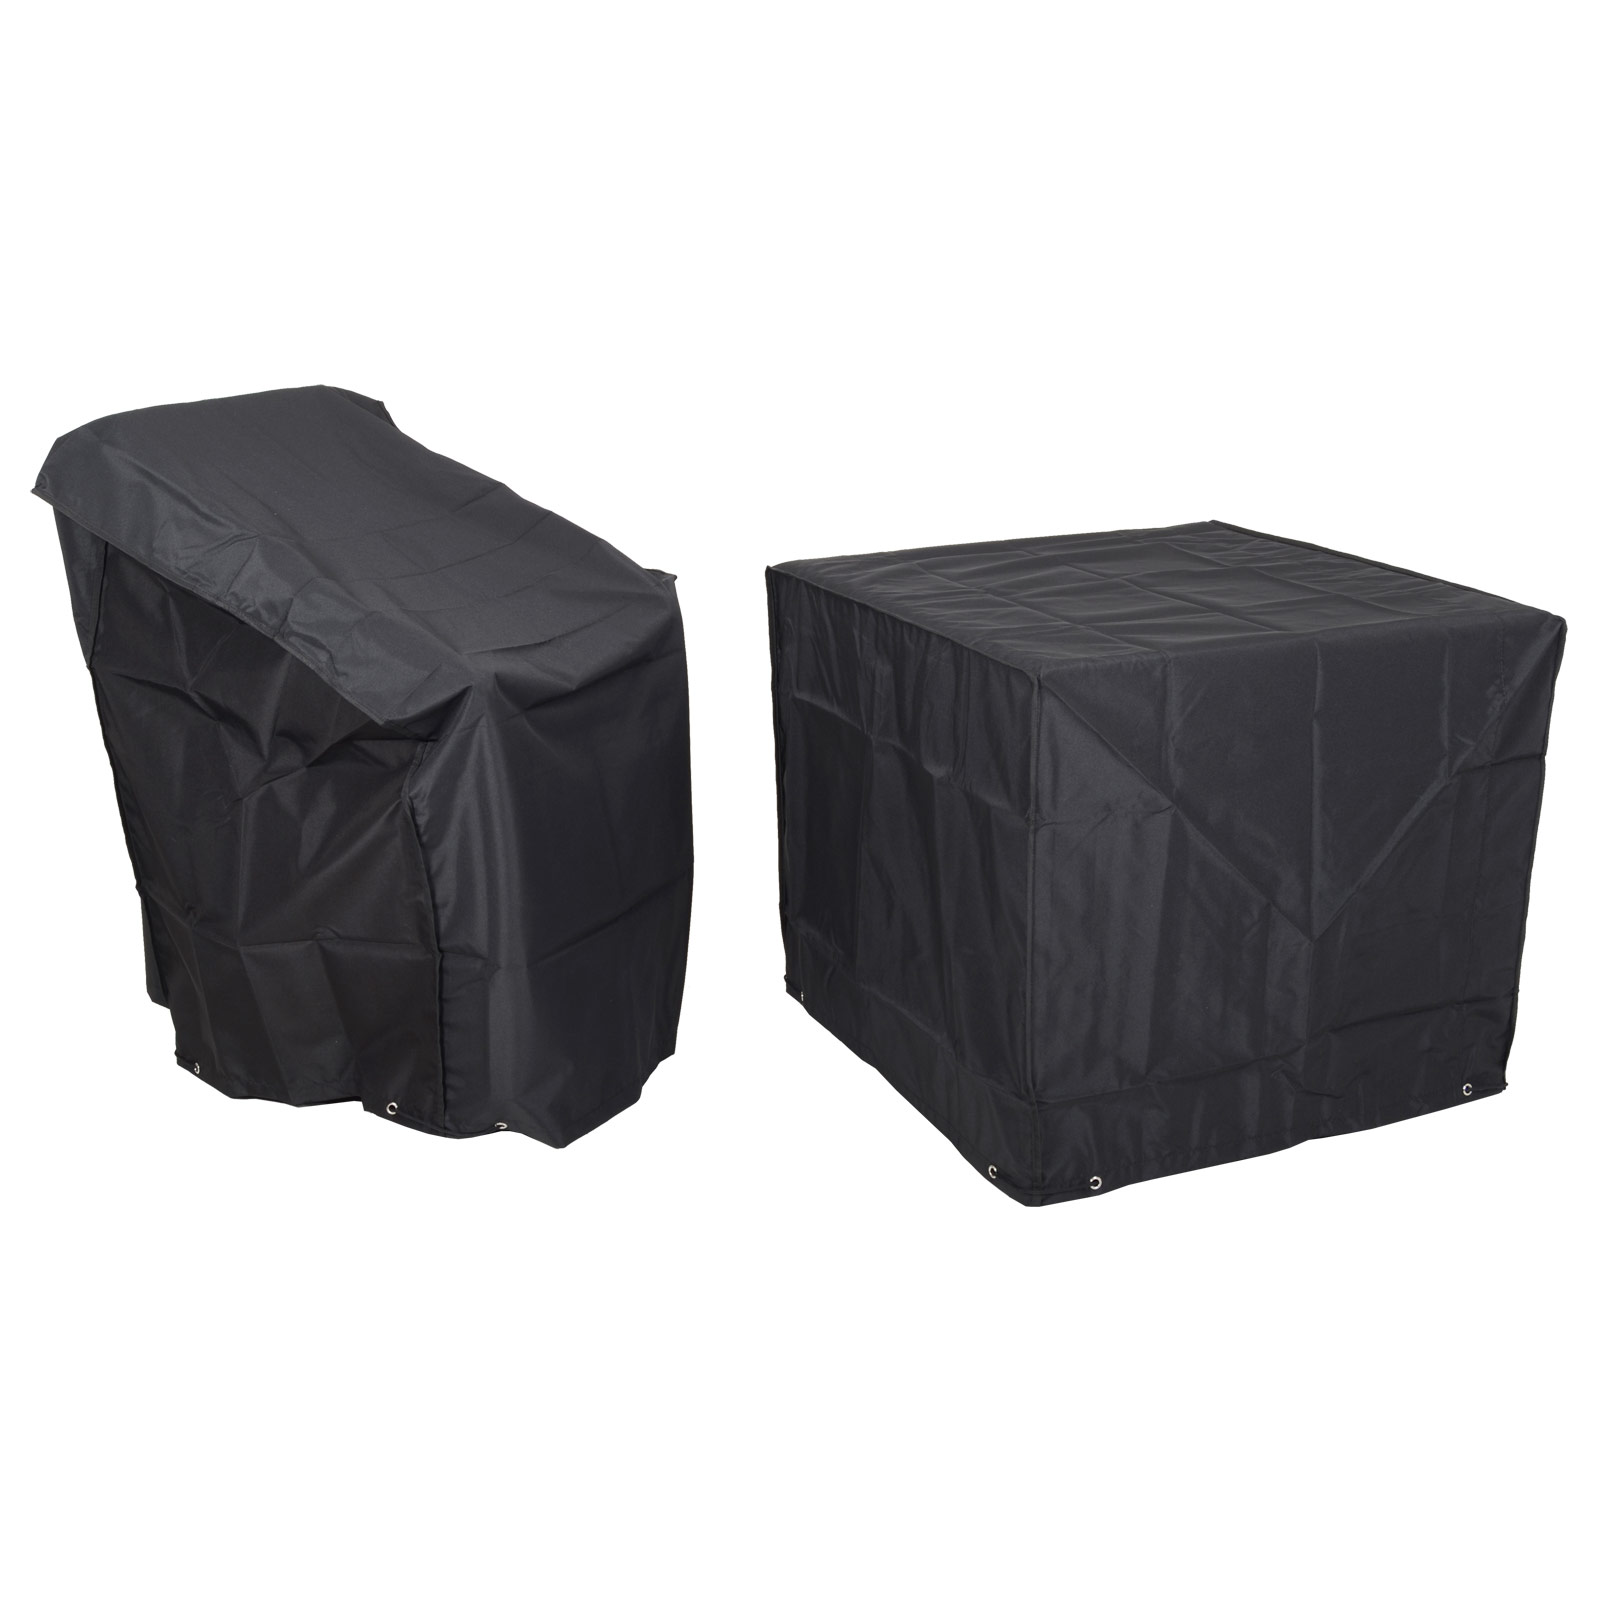 Heavy Duty Waterproof Protective Furniture Cover To Fit  : XS2647 11600 from www.ebay.co.uk size 1600 x 1600 jpeg 116kB